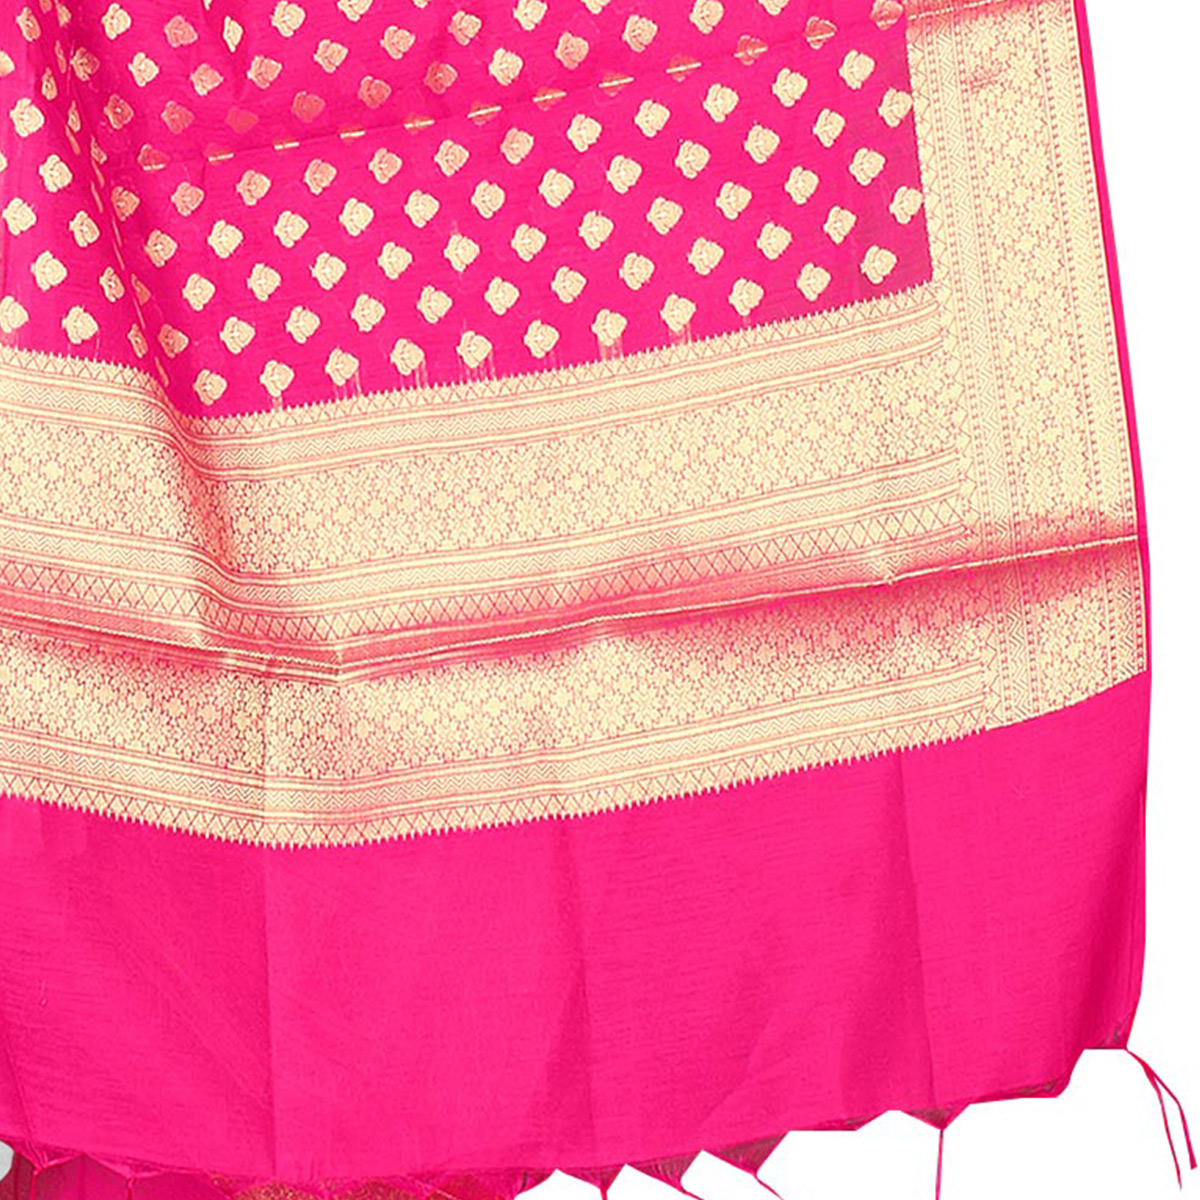 Charming Fuschia Pink Colored Banarasi Silk Dupatta